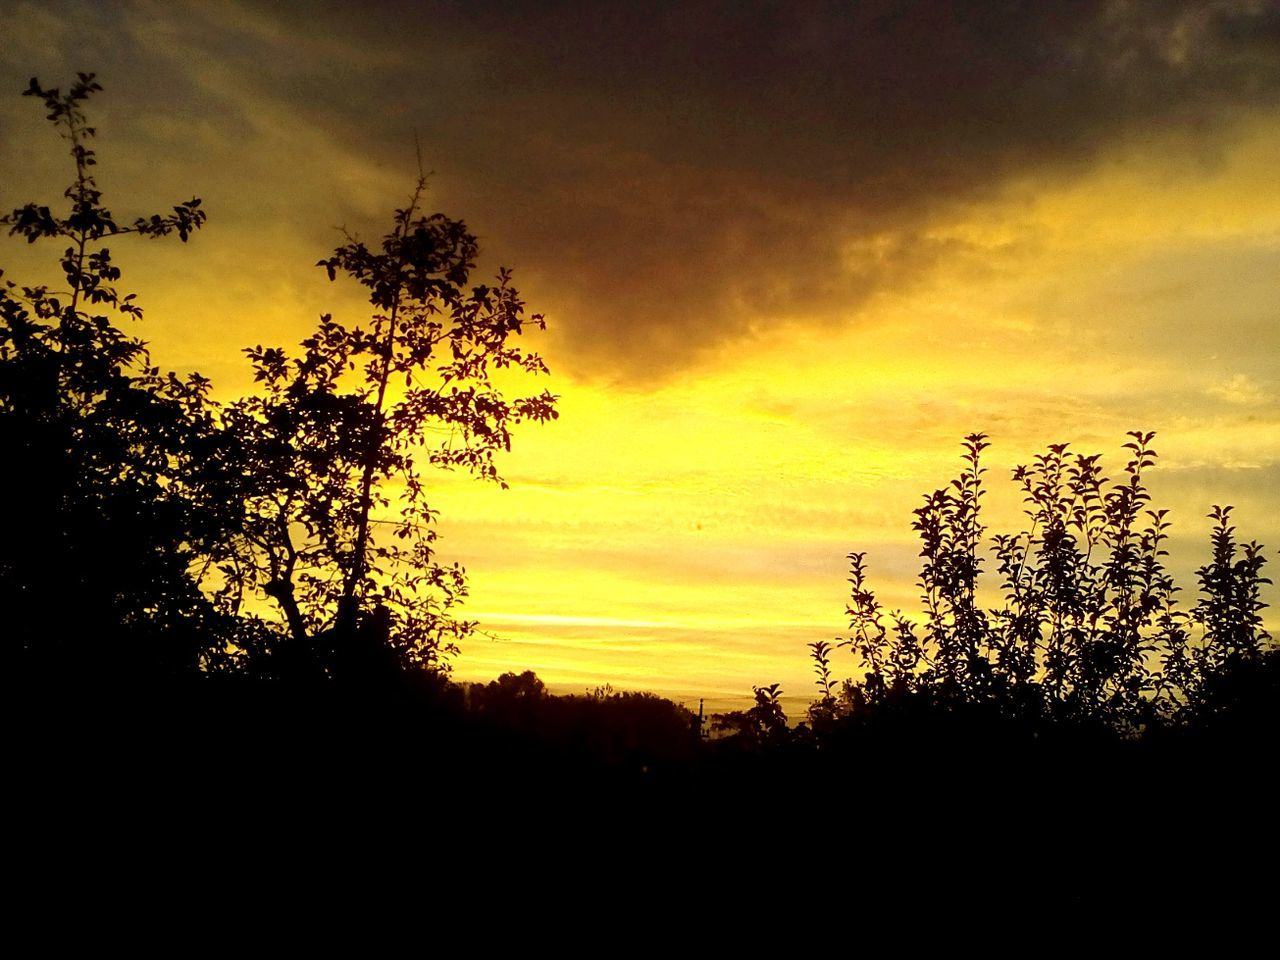 sunset, tree, silhouette, nature, beauty in nature, scenics, sky, tranquility, cloud - sky, tranquil scene, no people, dramatic sky, outdoors, growth, yellow, forest, landscape, day